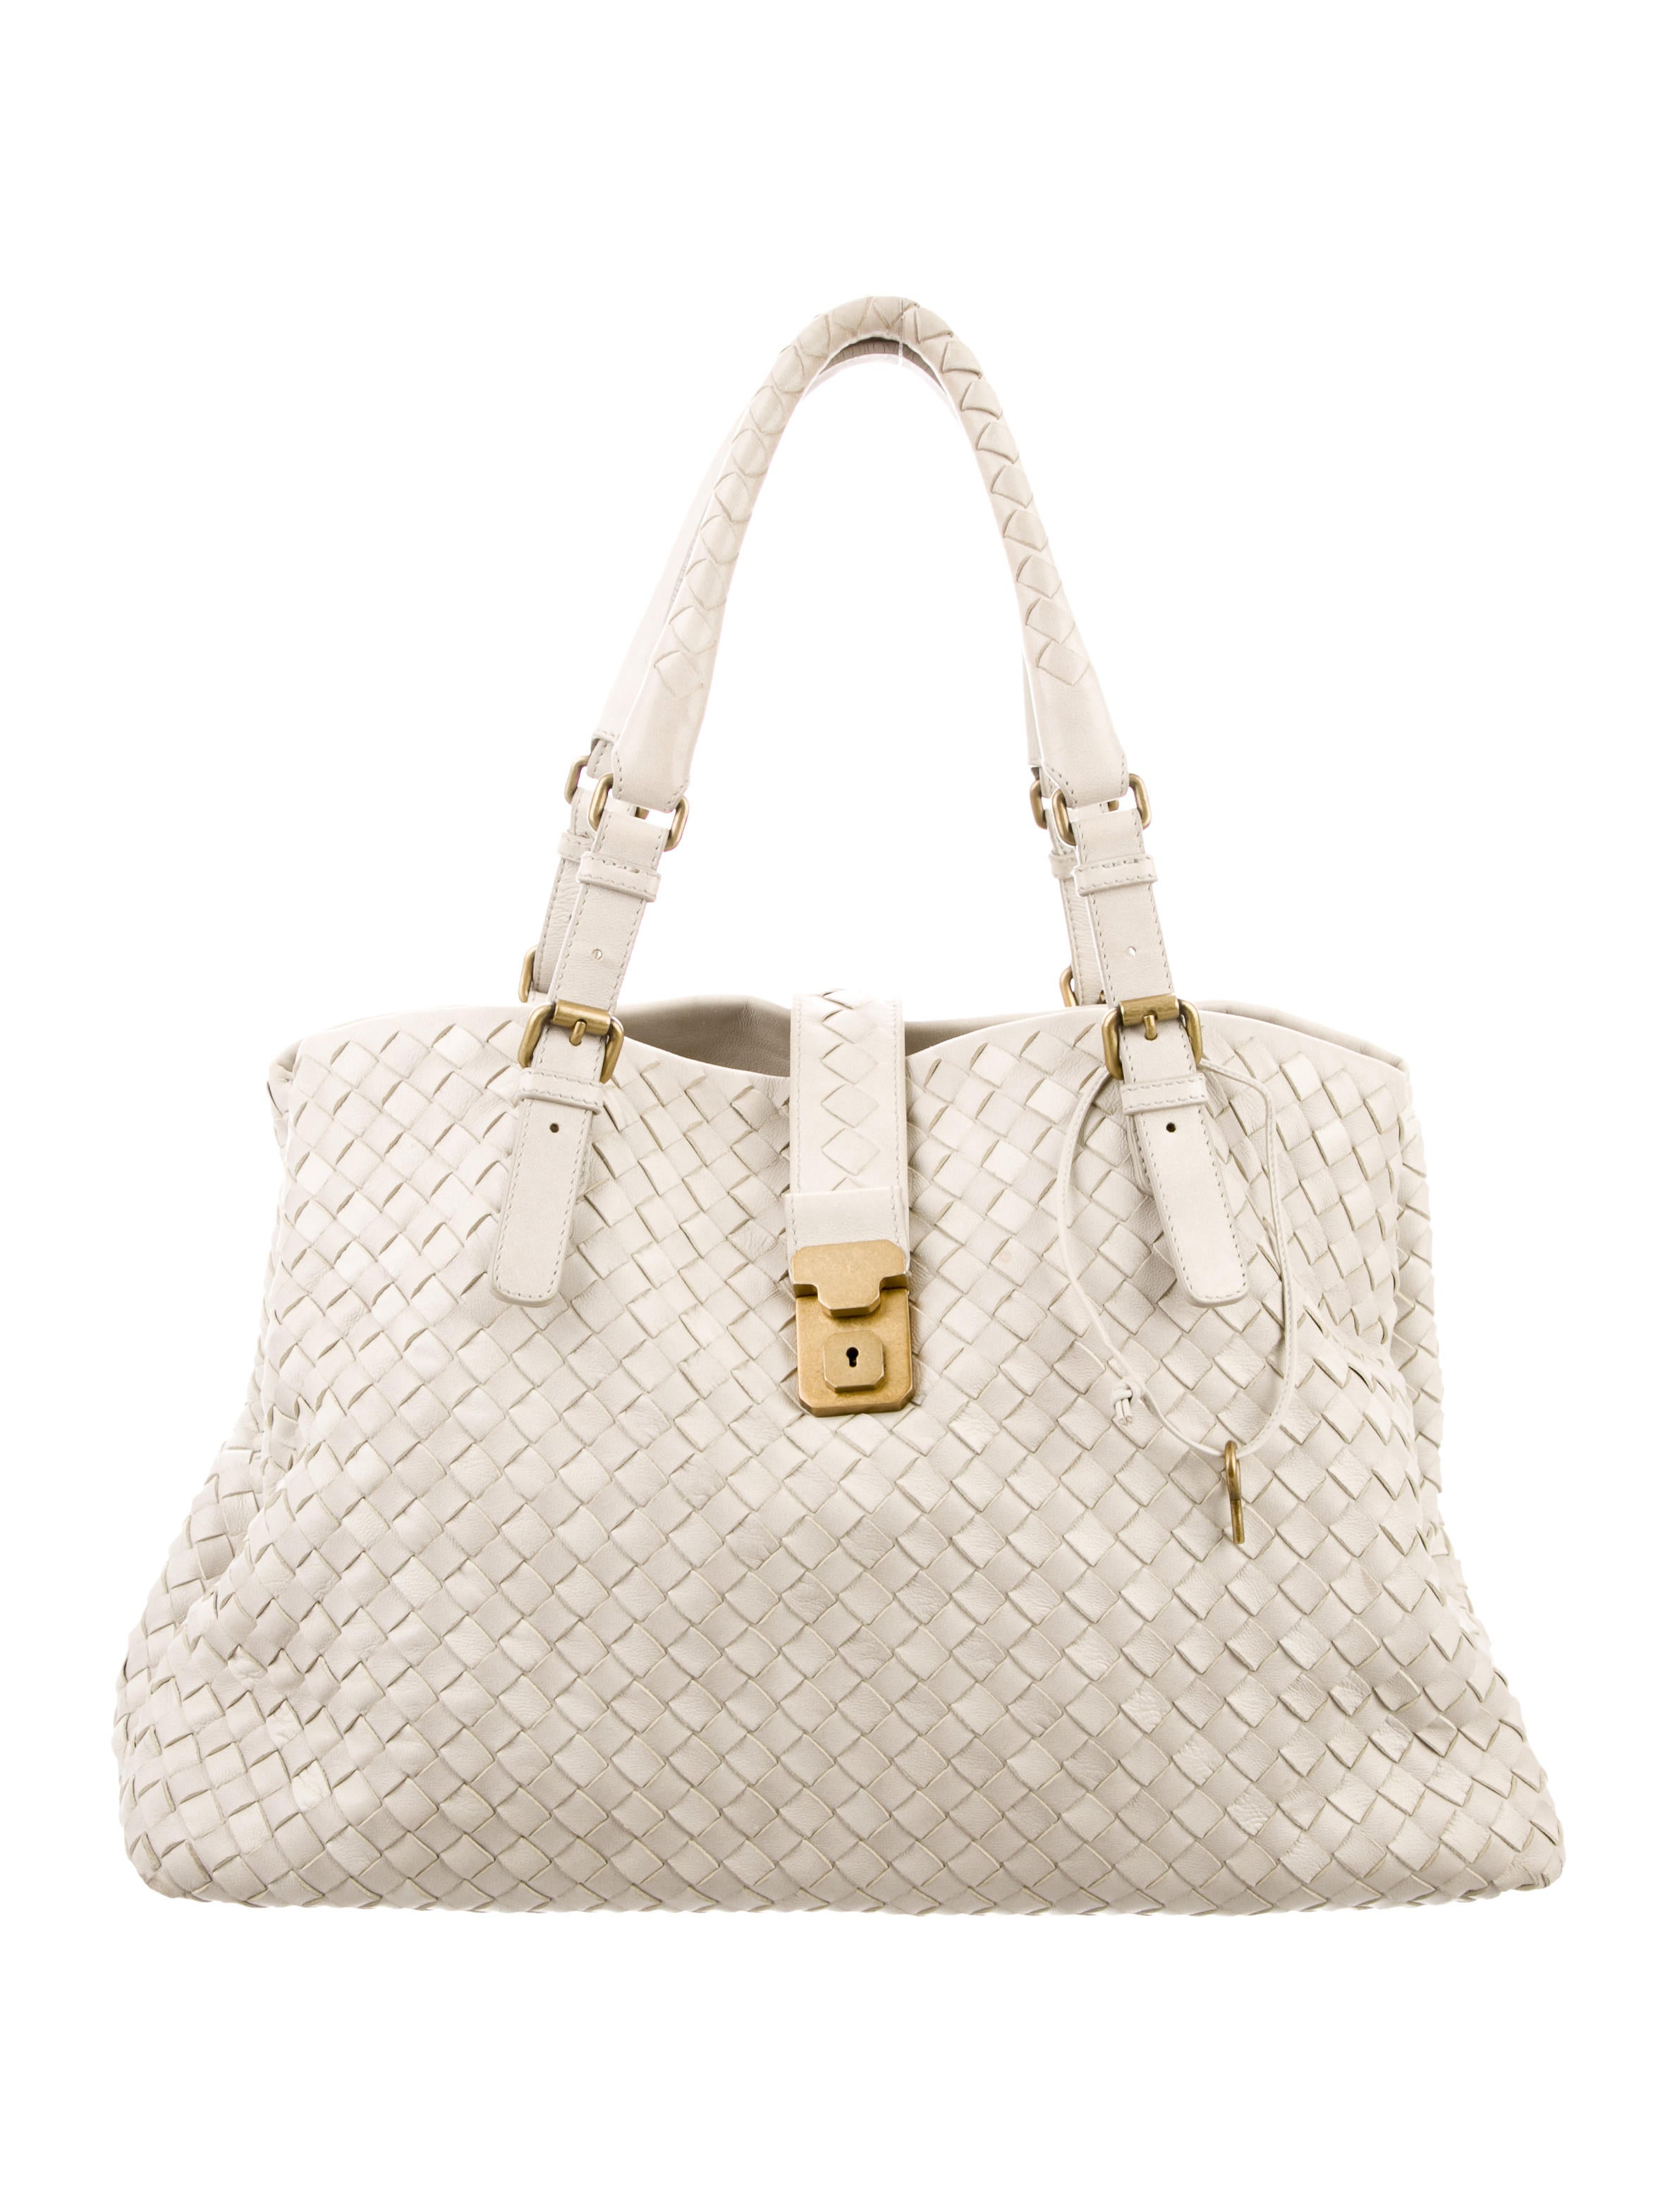 ed8f25a17f Bottega Veneta Medium Intrecciato Roma Bag - Handbags - BOT55534 ...